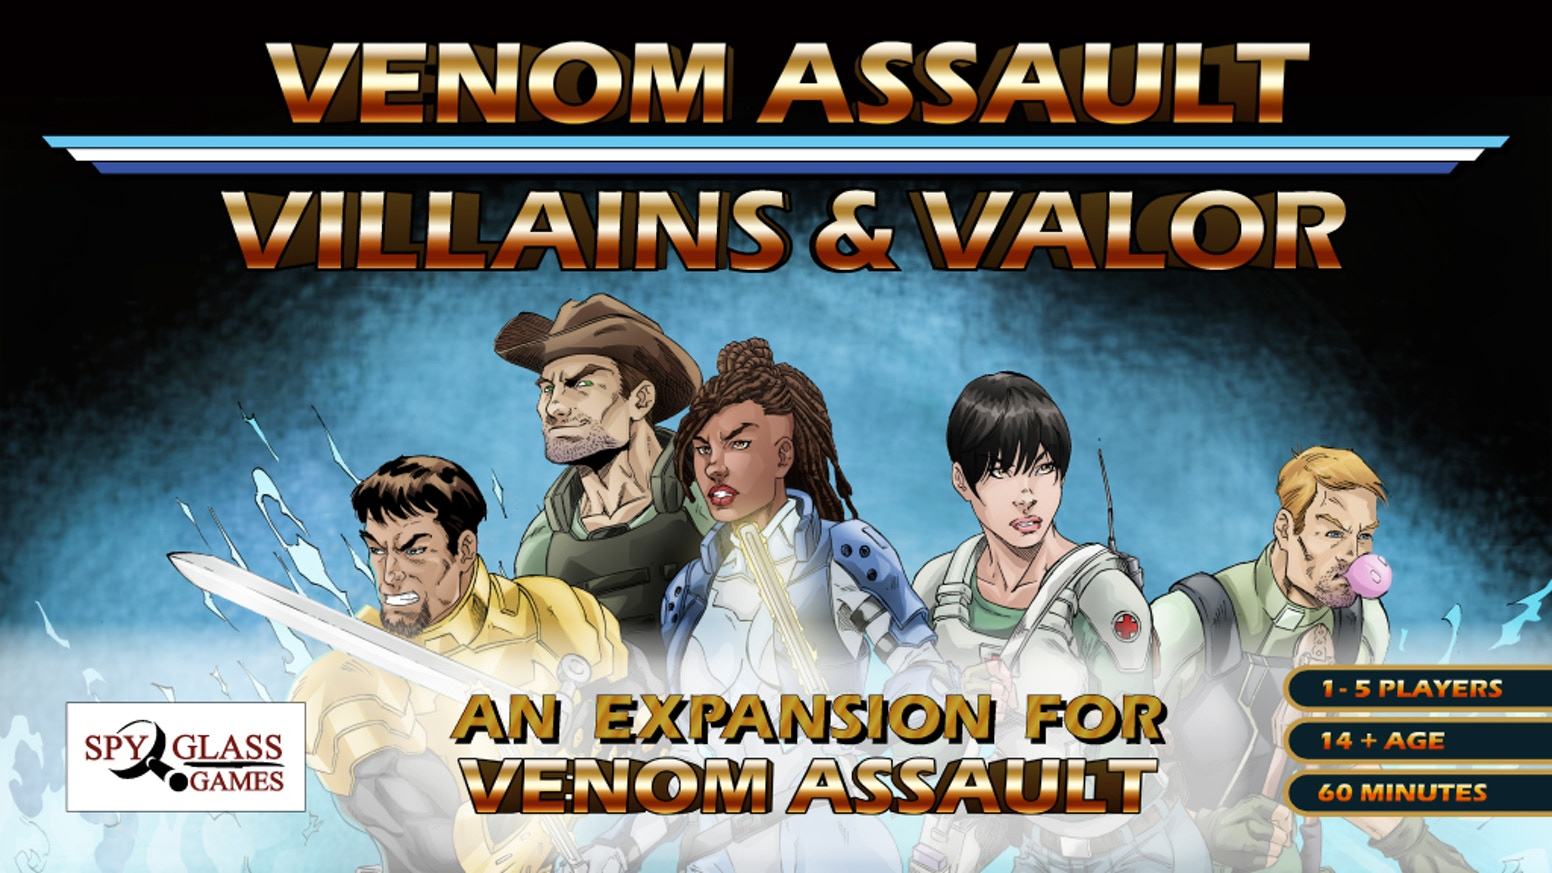 Venom assault a Deck builder with dice-based combat; is being reprinted for new fans and an all-new expansion villains & valor for all